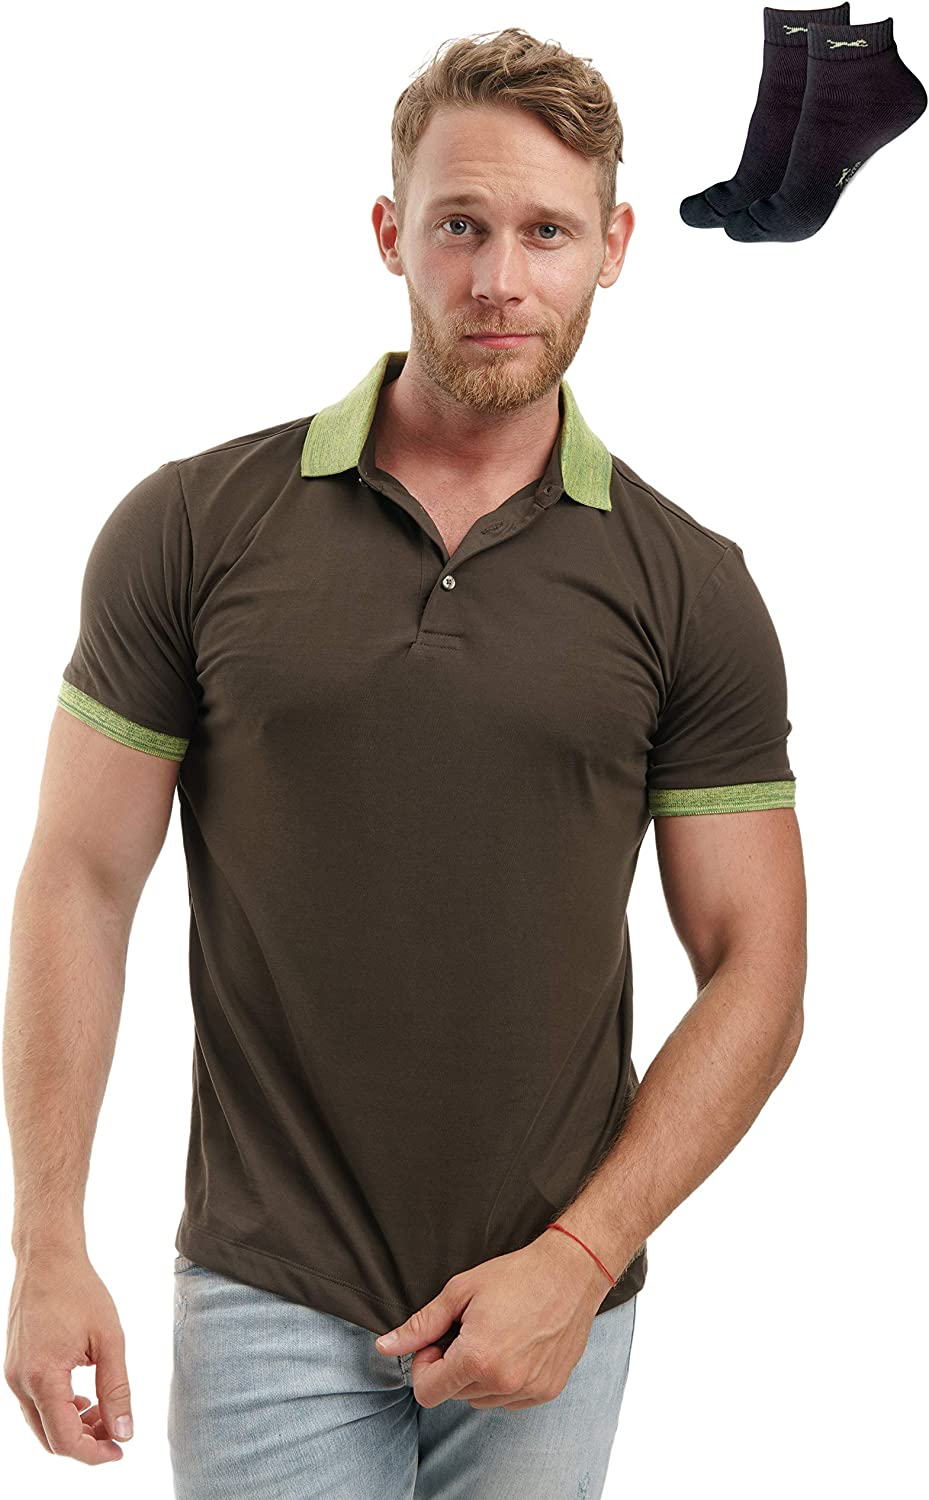 Slim Fit Polo Shirts for Men - Premium Organic Cotton Short Sleeve Casual Fitted Collared Mens Polo T Shirt